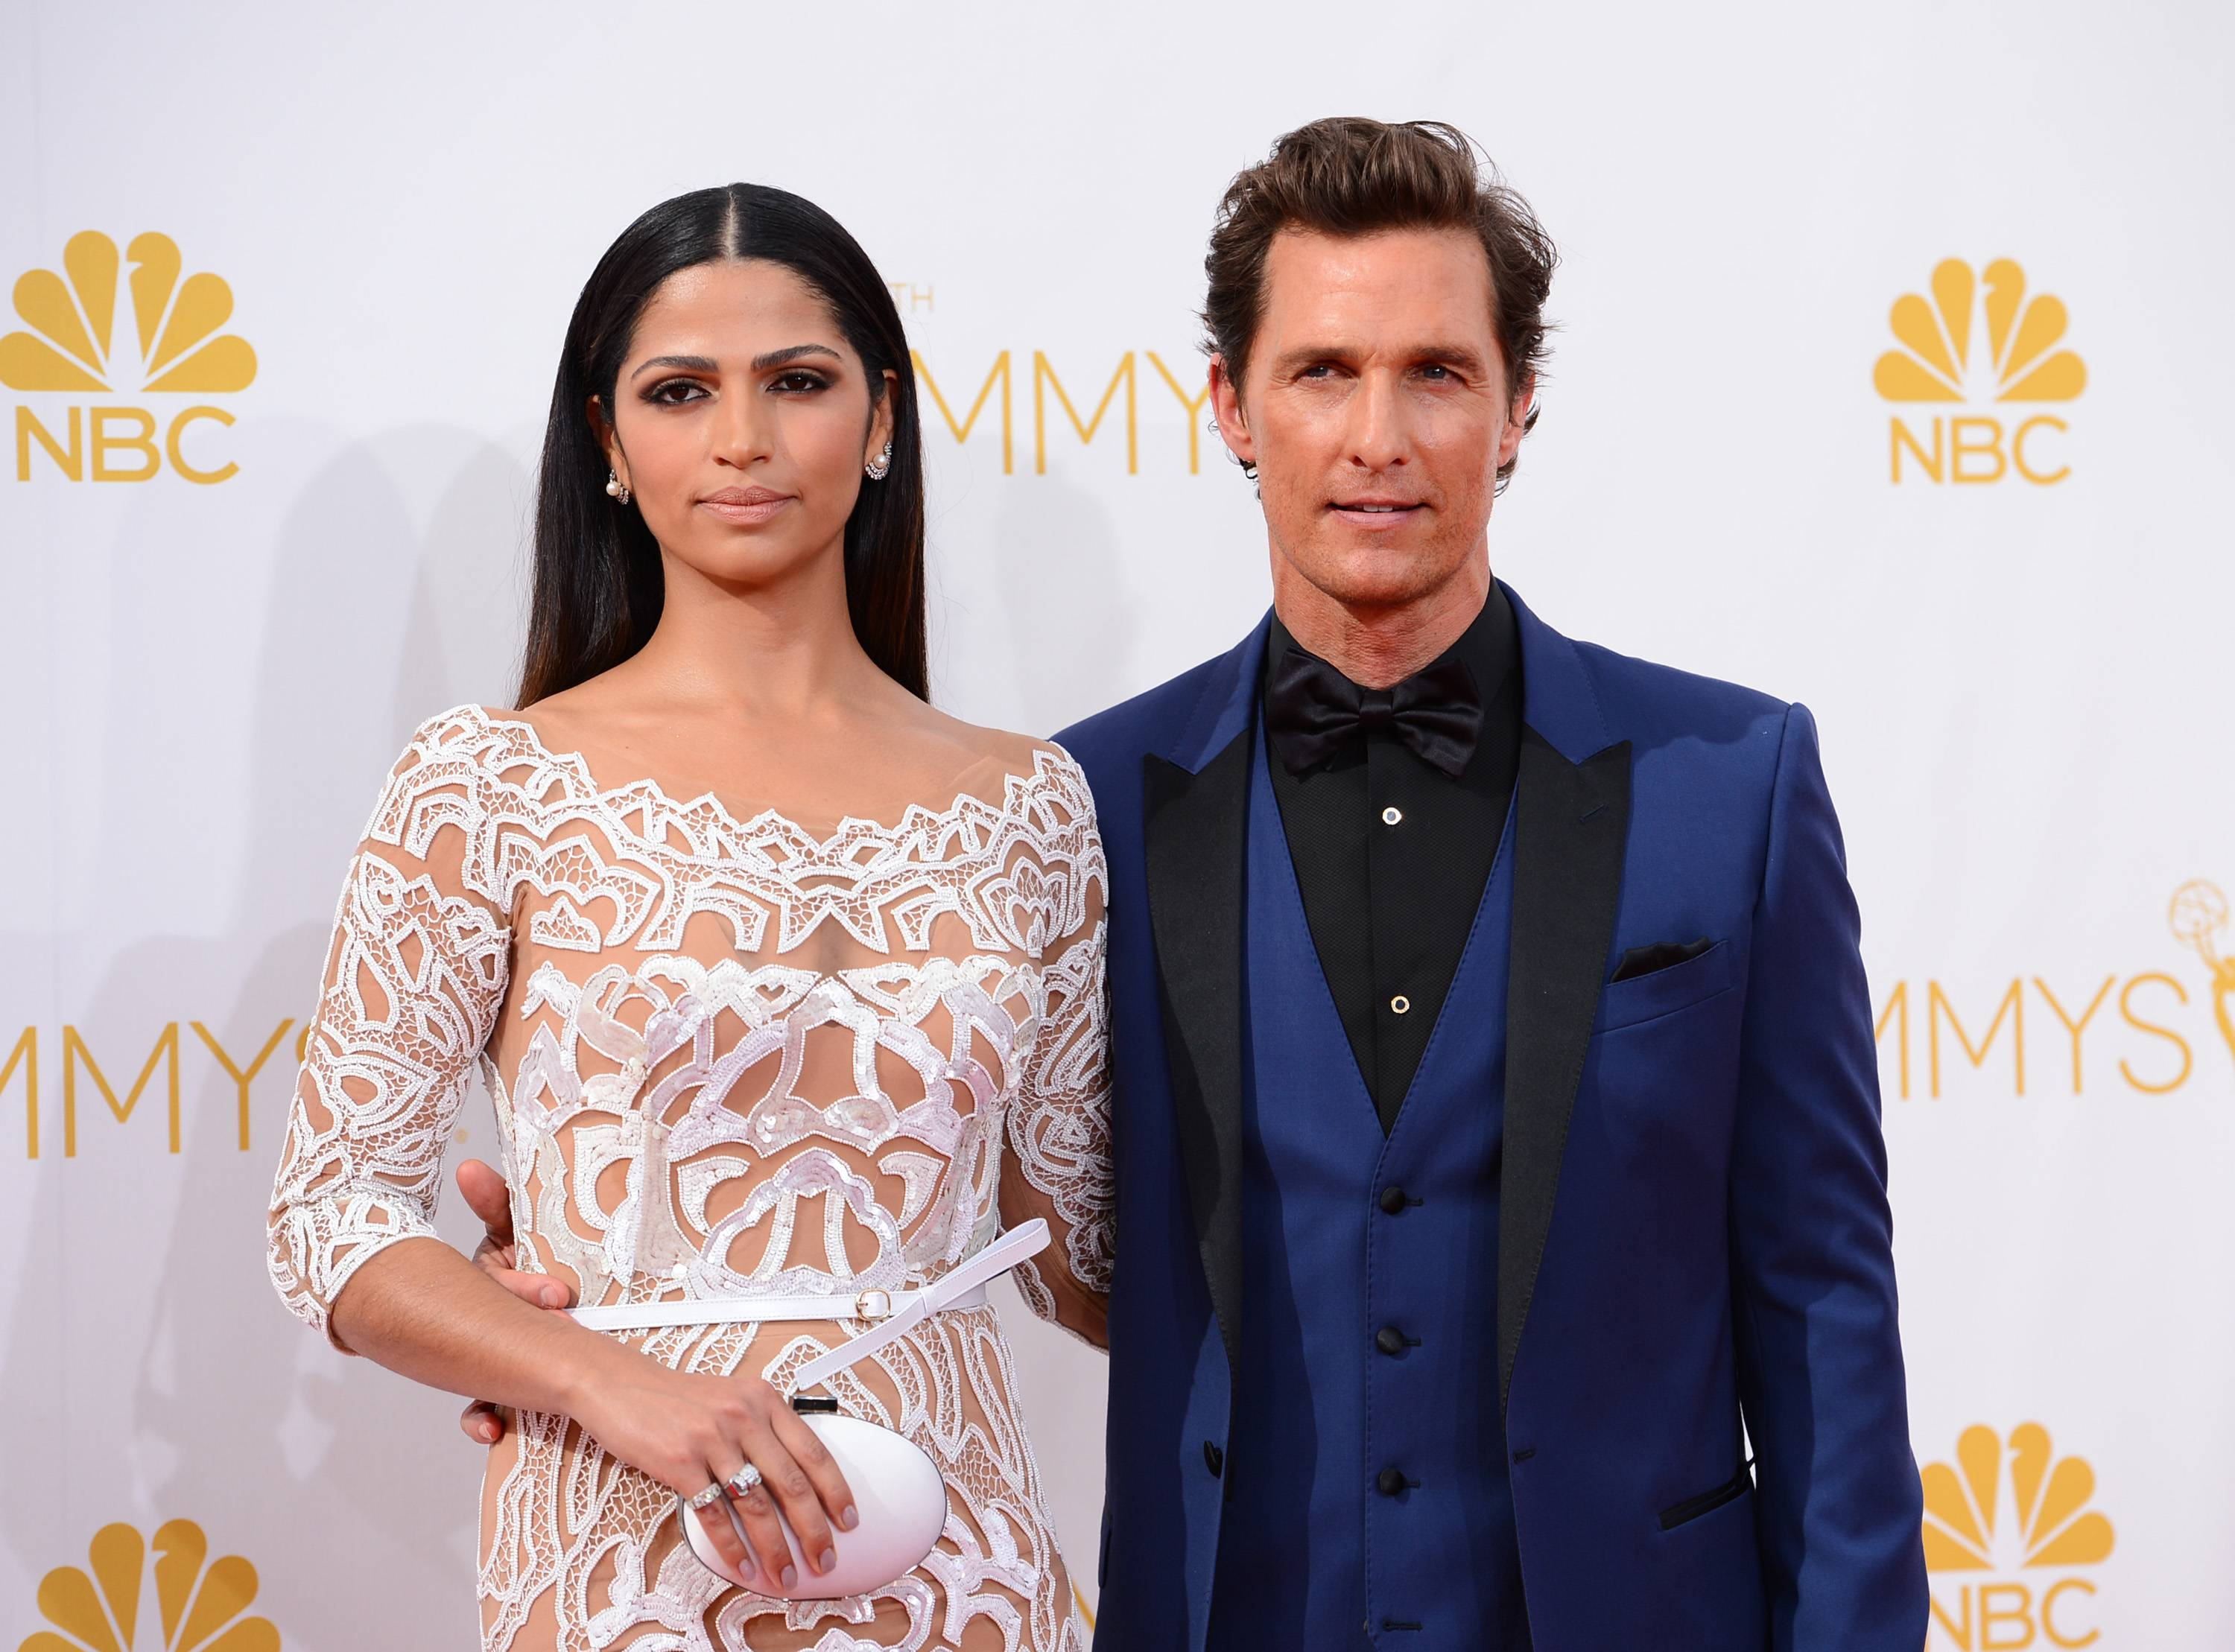 Camila Alves, left, and Matthew McConaughey arrive at the 66th Annual Primetime Emmy Awards at the Nokia Theatre.